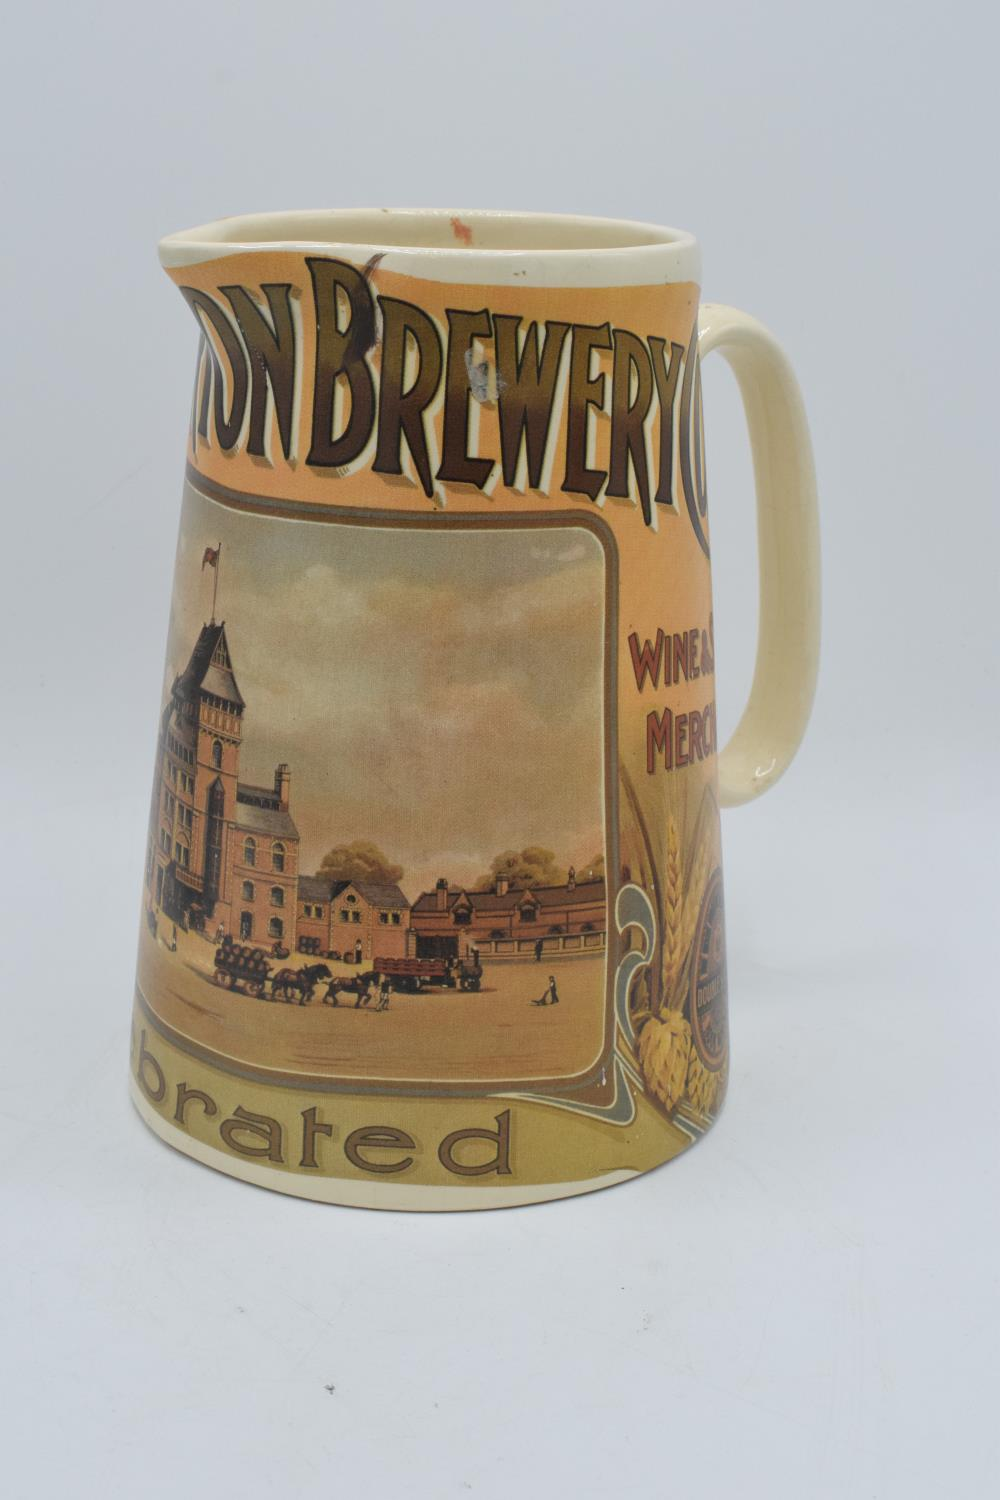 'The Hook Norton Brewery Co' late 20th century transfer print pub jug. In good condition with no